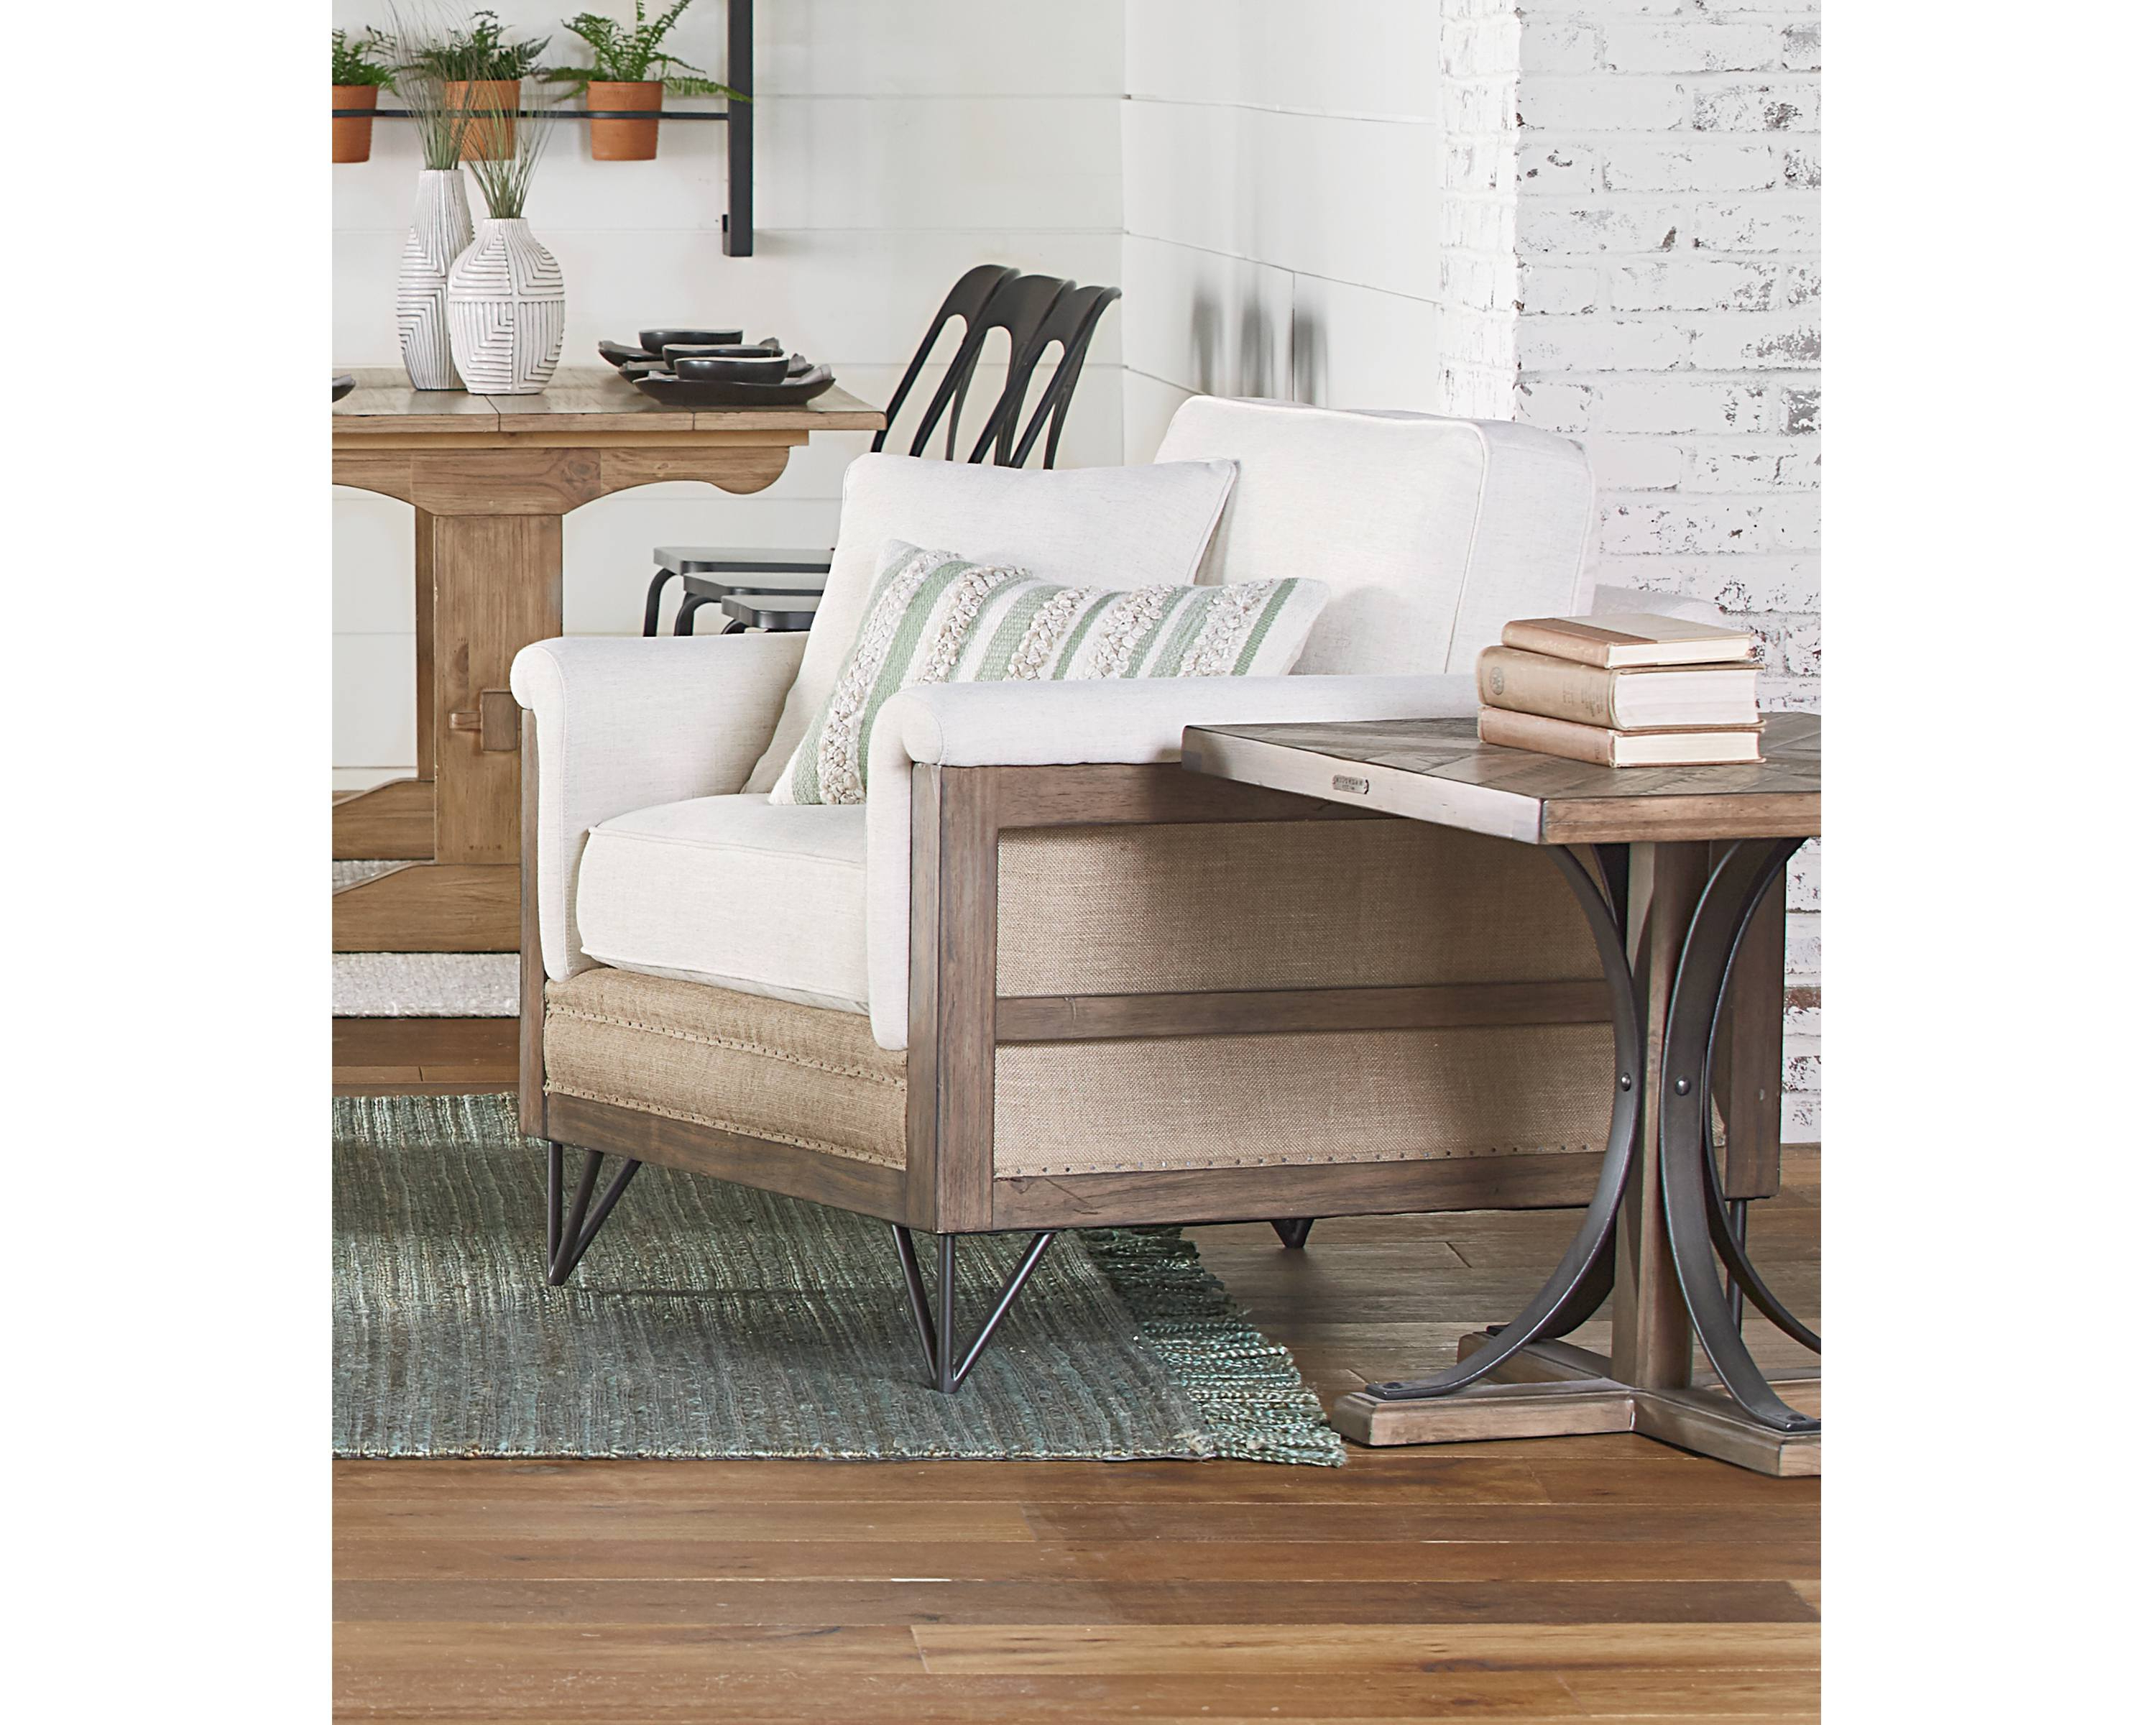 Fashionable Paradigm Chair – Magnolia Home For Magnolia Home Paradigm Sofa Chairs By Joanna Gaines (View 2 of 20)